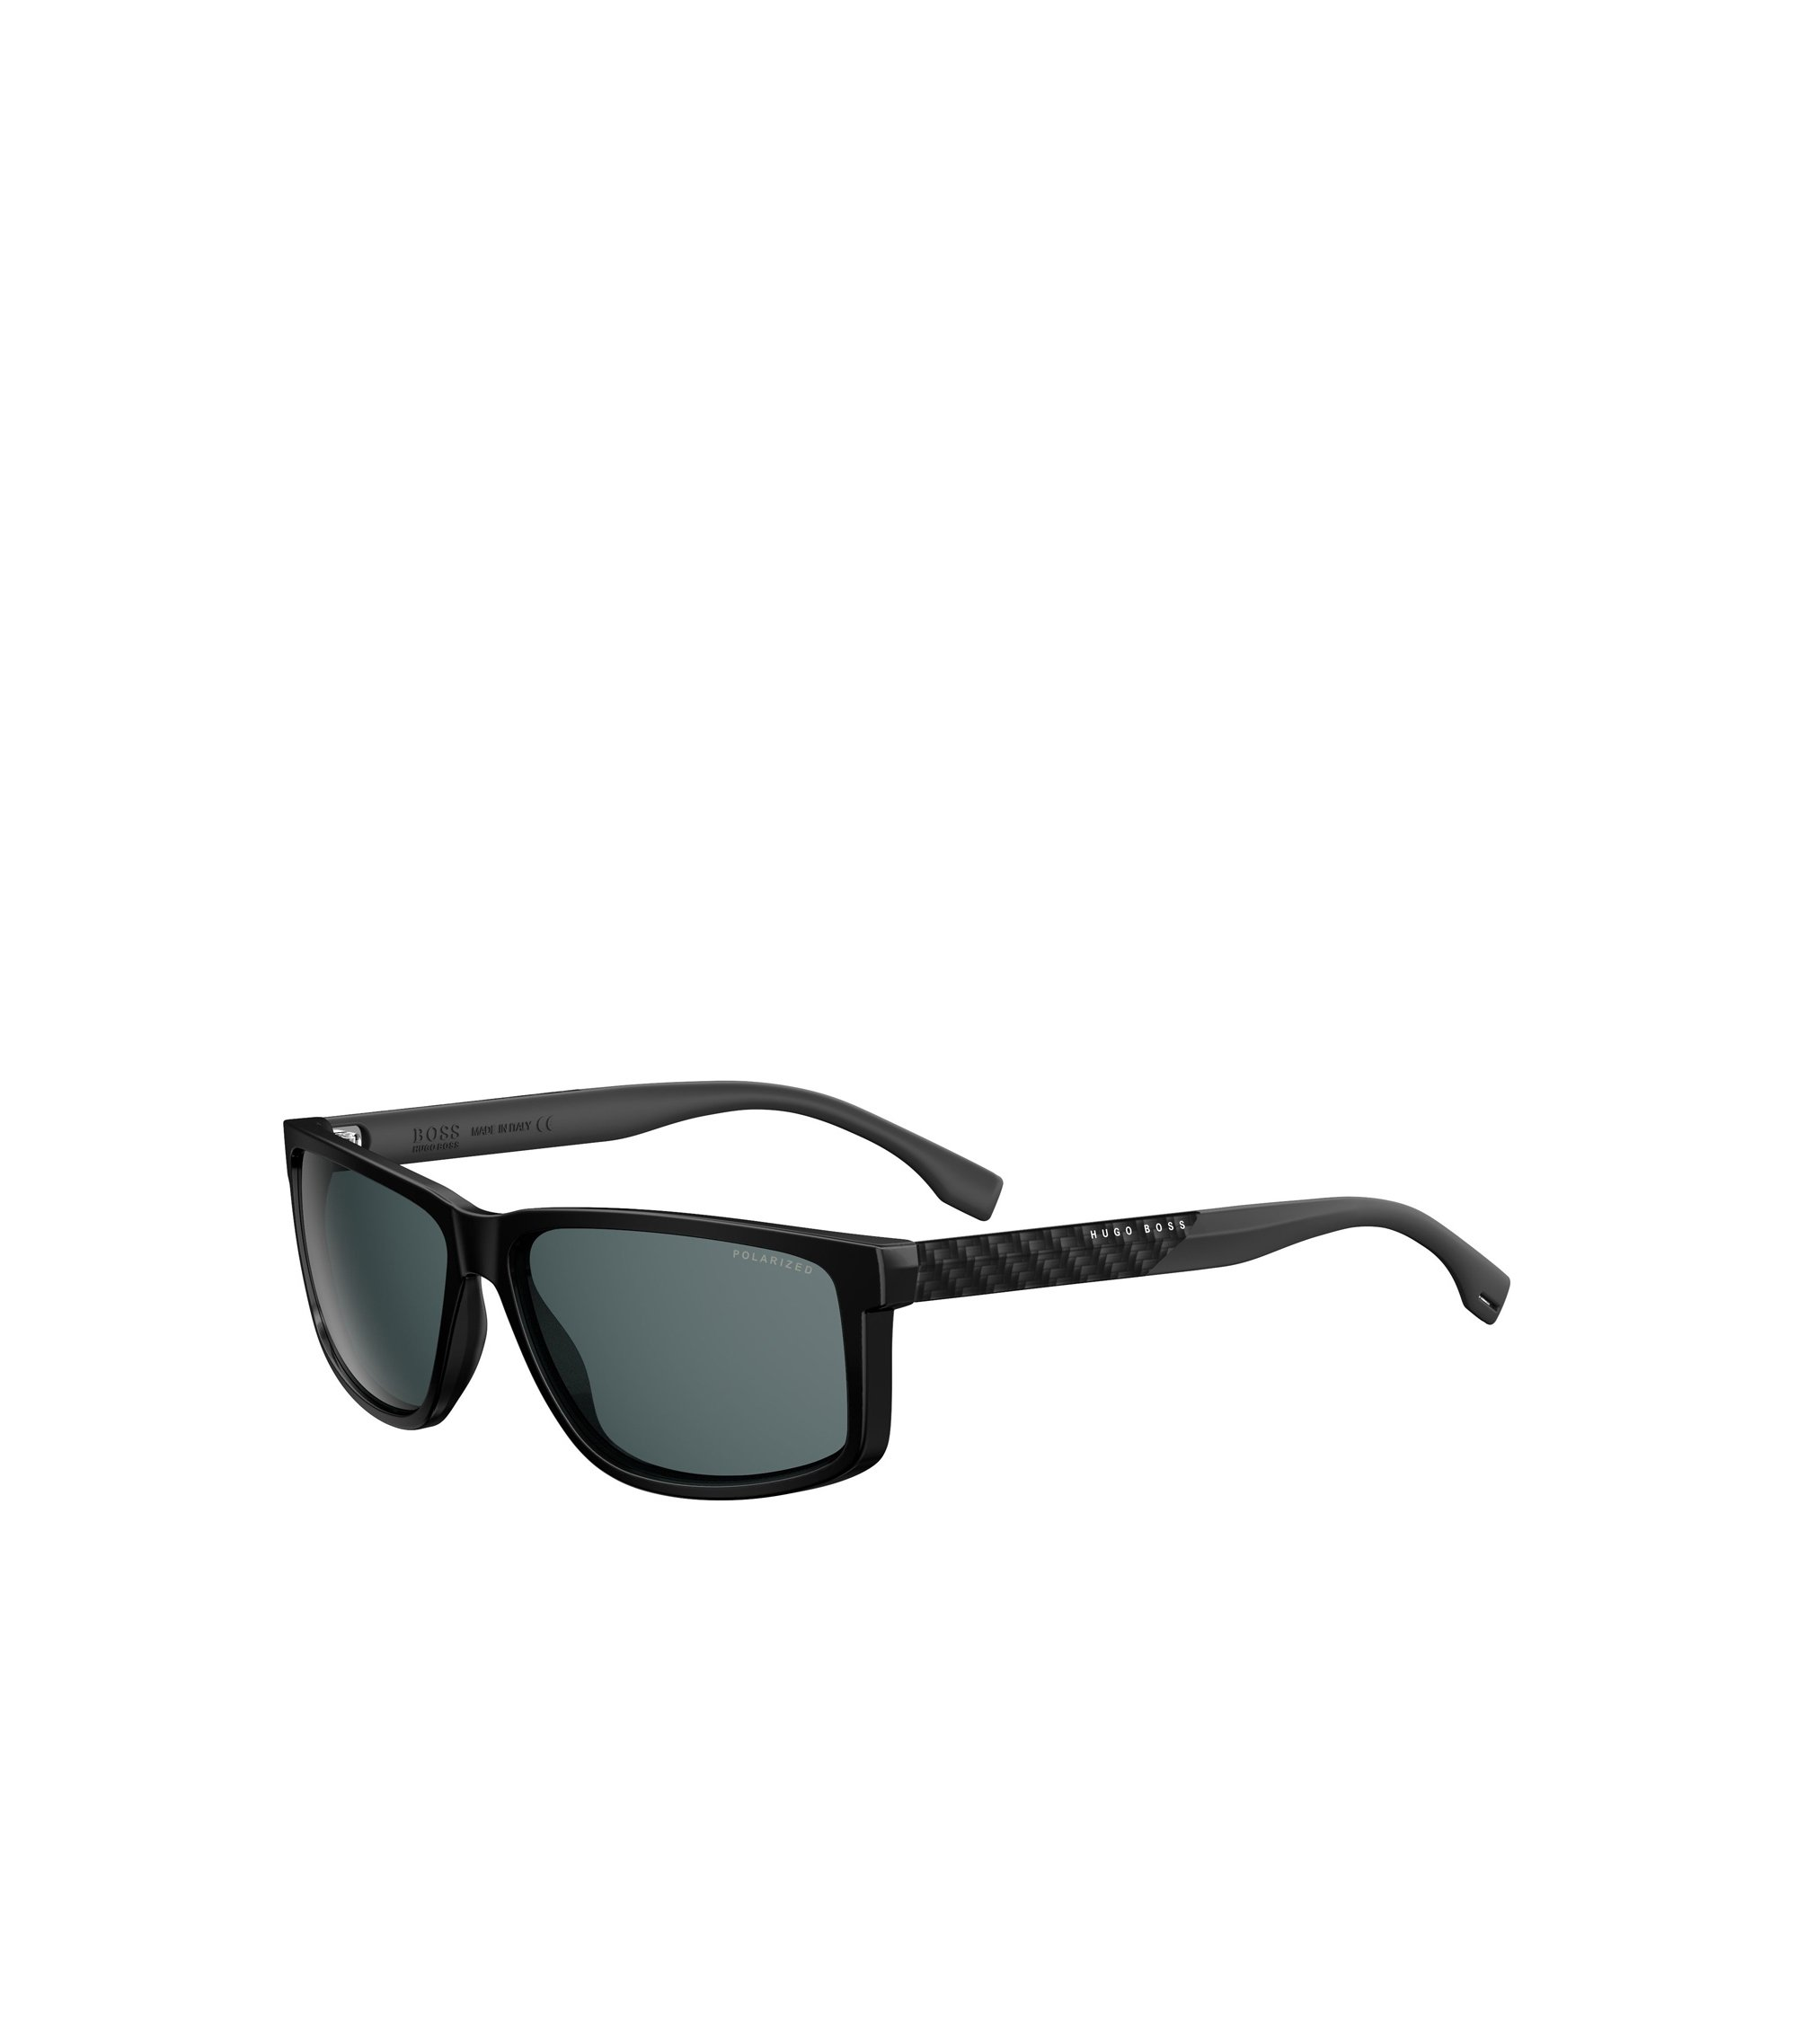 Dark Grey Carbon Fiber Rectangular Sunglasses | BOSS 0879, Assorted-Pre-Pack